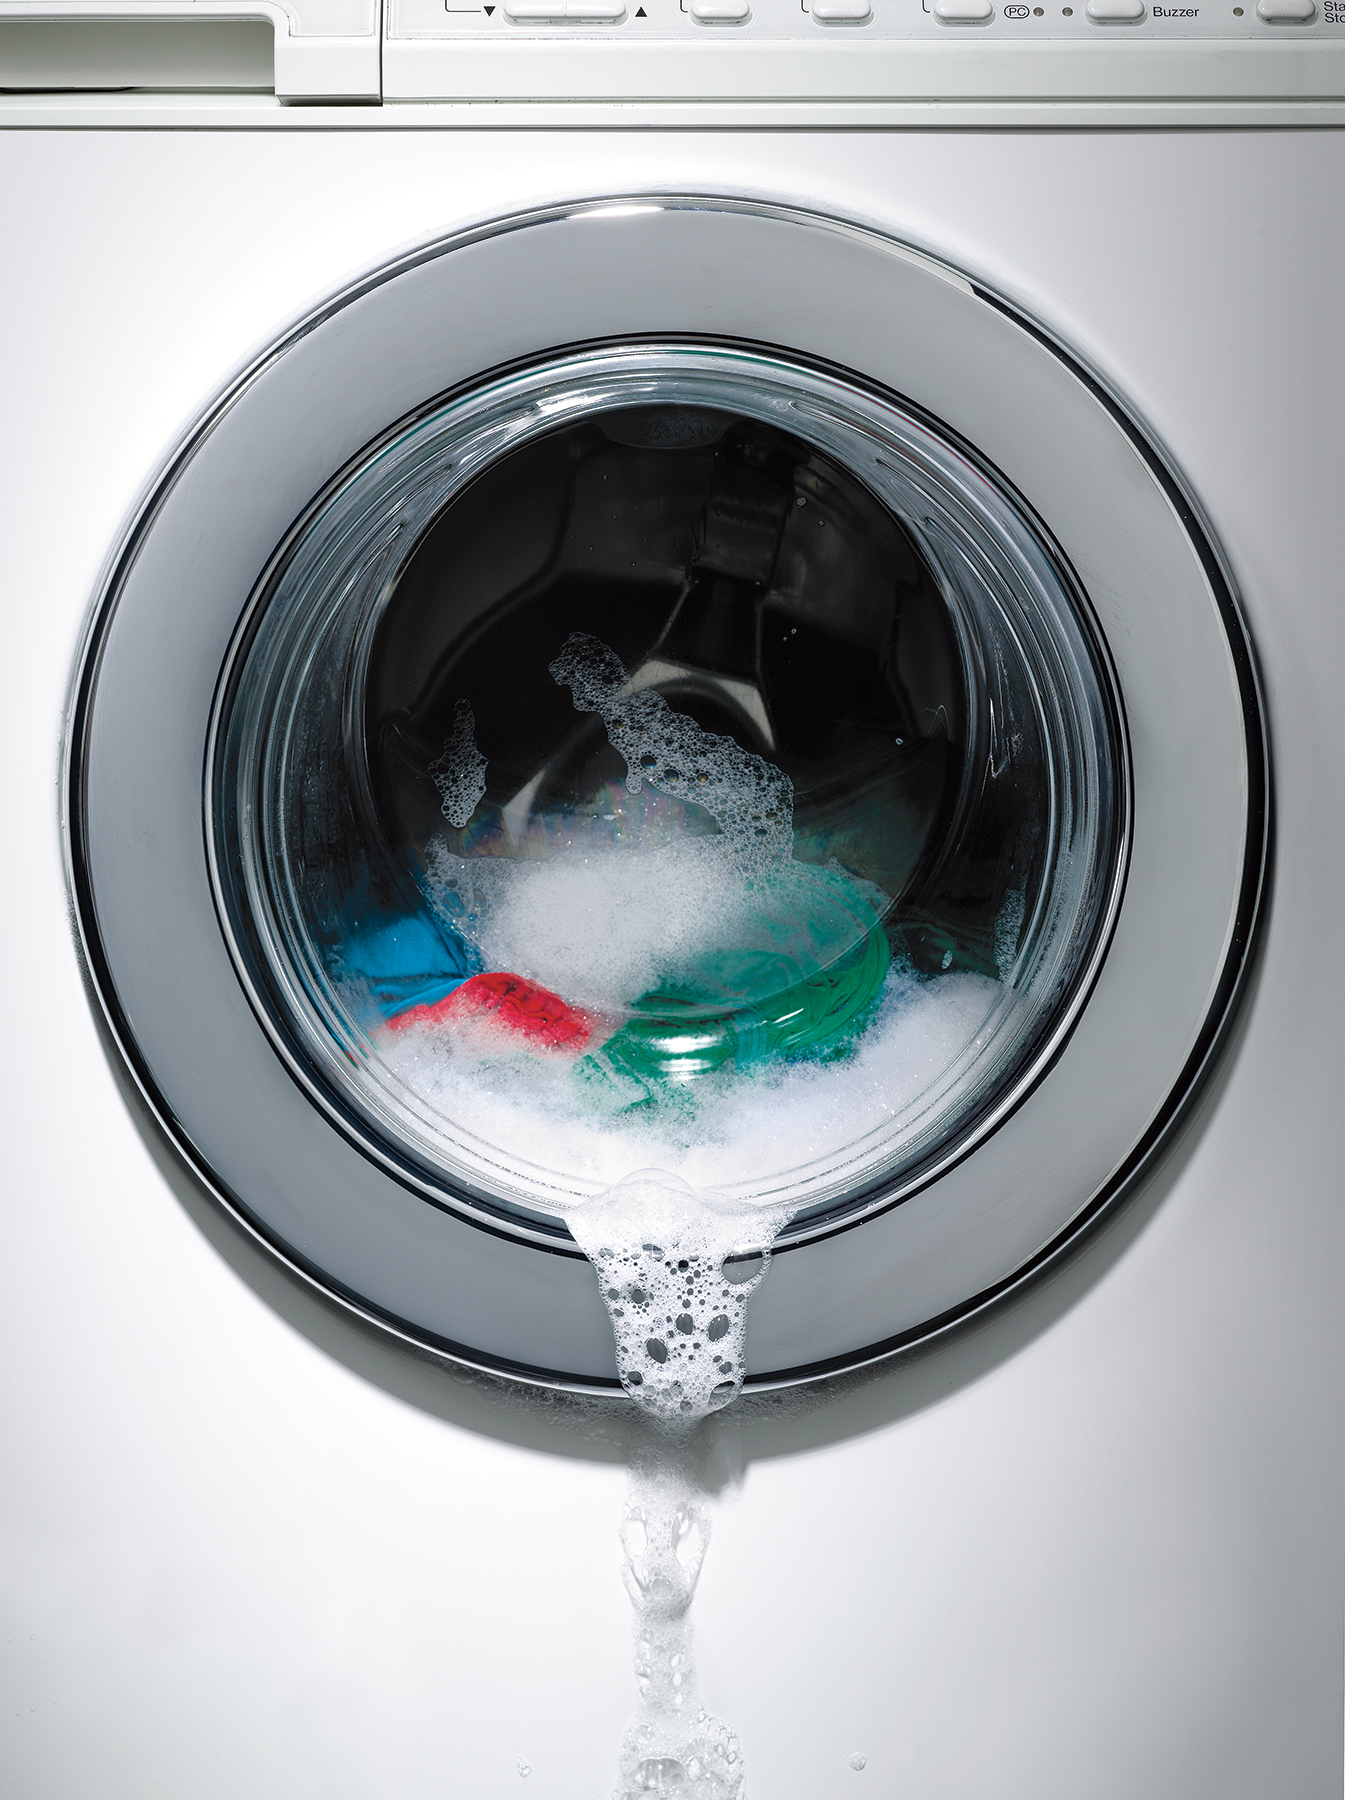 Why Does My Washing Machine Smell Like Mildew? - Real Simple